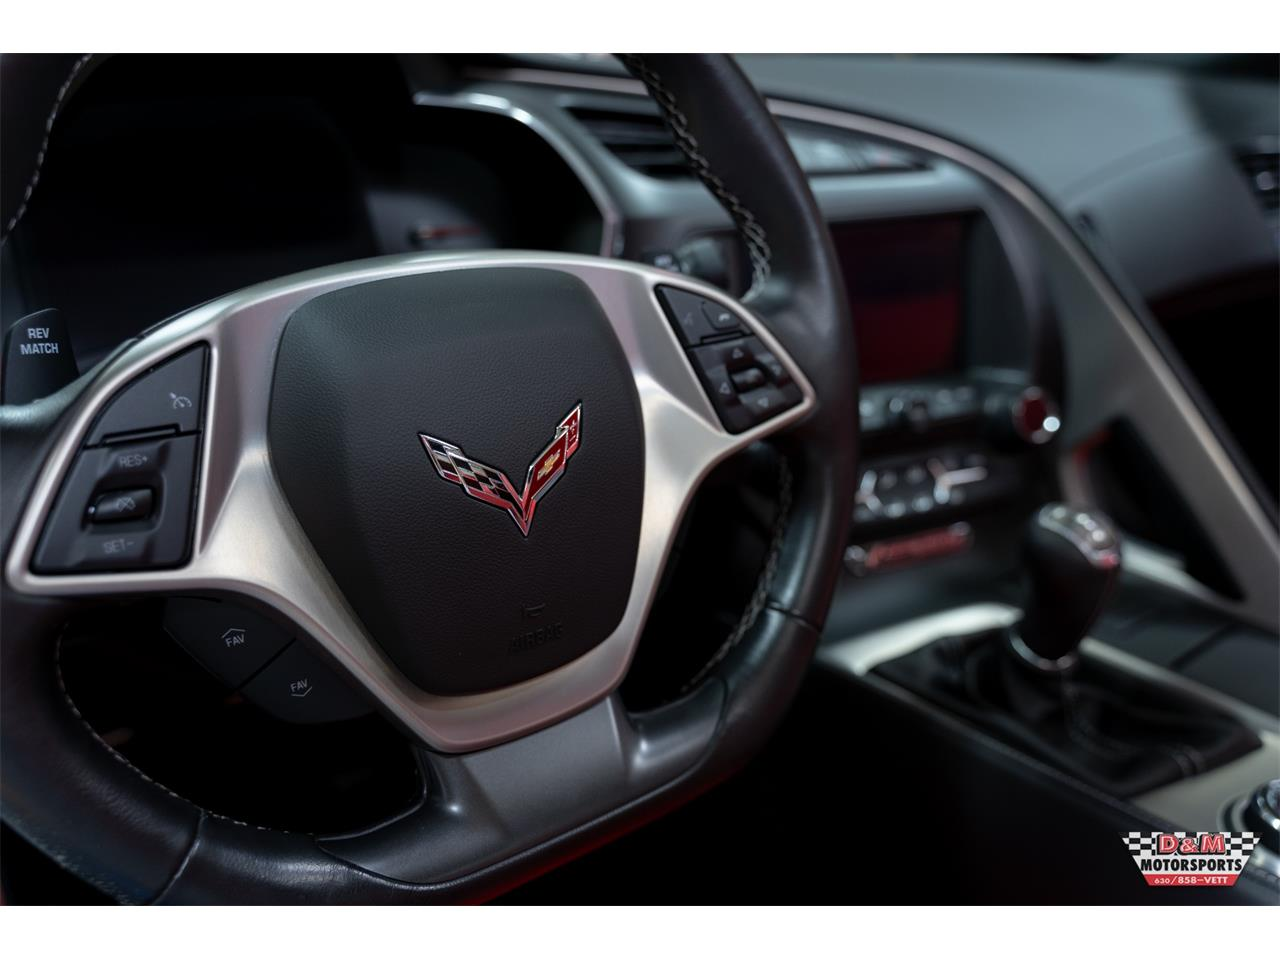 Large Picture of 2016 Chevrolet Corvette located in Illinois - $44,995.00 - R2HE